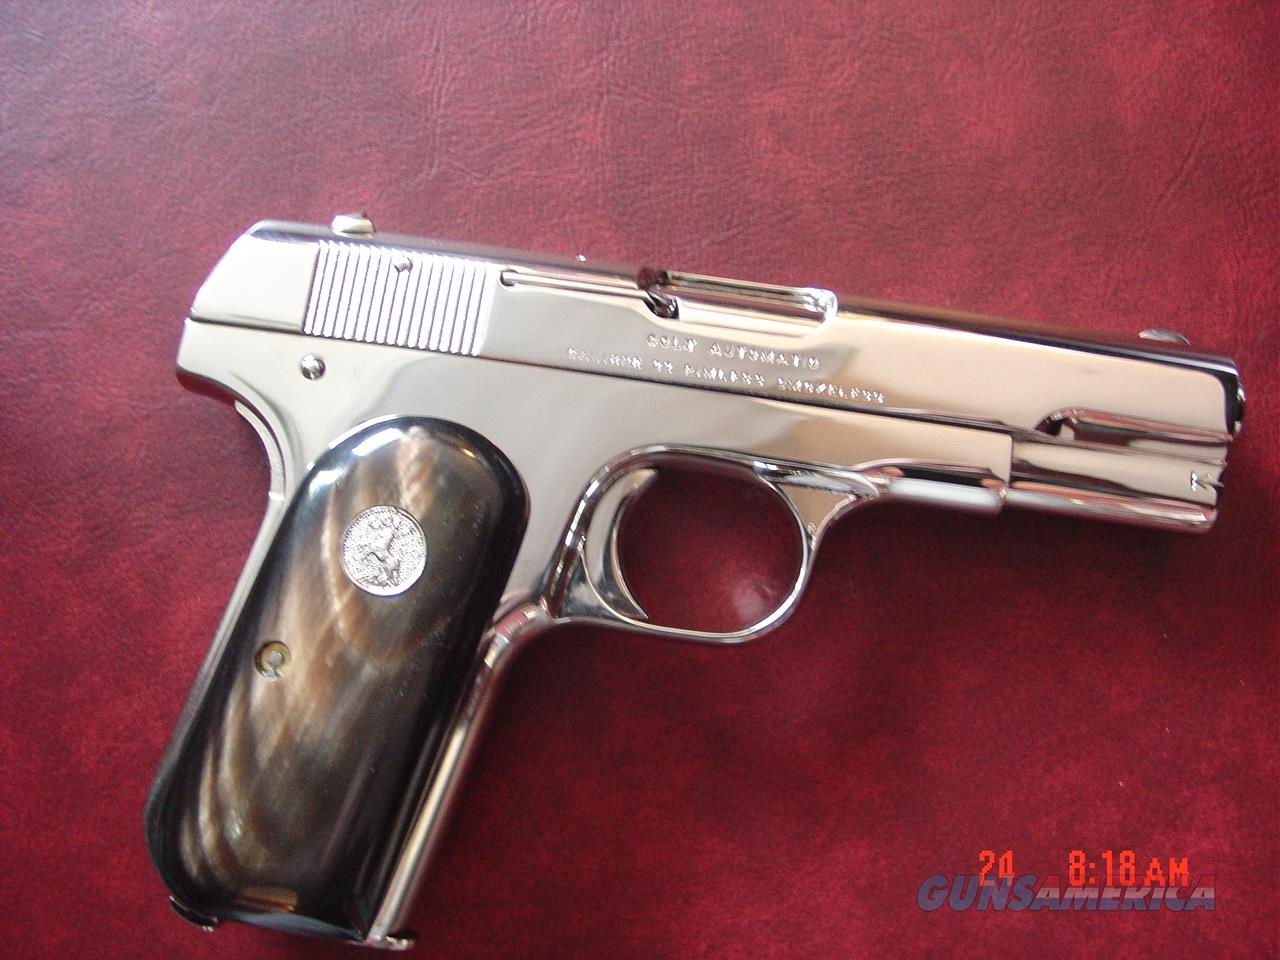 Colt 1903-real Ox Horn grips,32 ACP,fully refinished in bright nickel,made circa 1918,99 years old,a real showpiece,hammerless with grip safety-awesome !!  Guns > Pistols > Colt Automatic Pistols (.25, .32, & .380 cal)